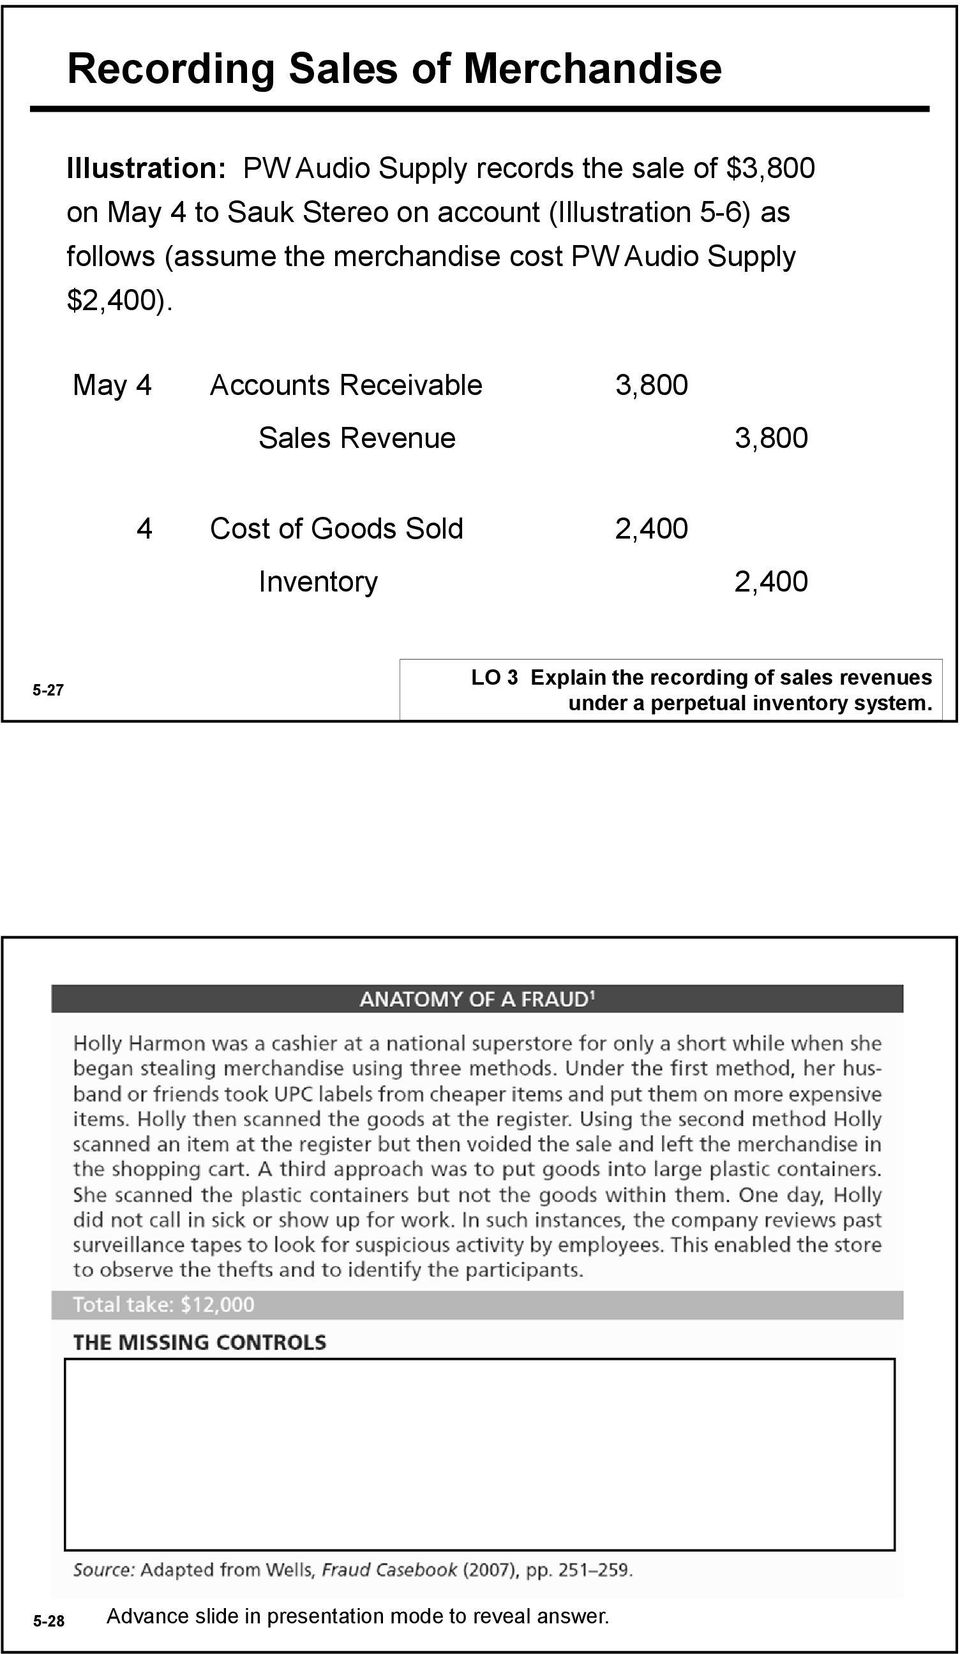 May 4 Accounts Receivable 3,800 Sales Revenue 3,800 4 Cost of Goods Sold 2,400 Inventory 2,400 5-27 LO 3